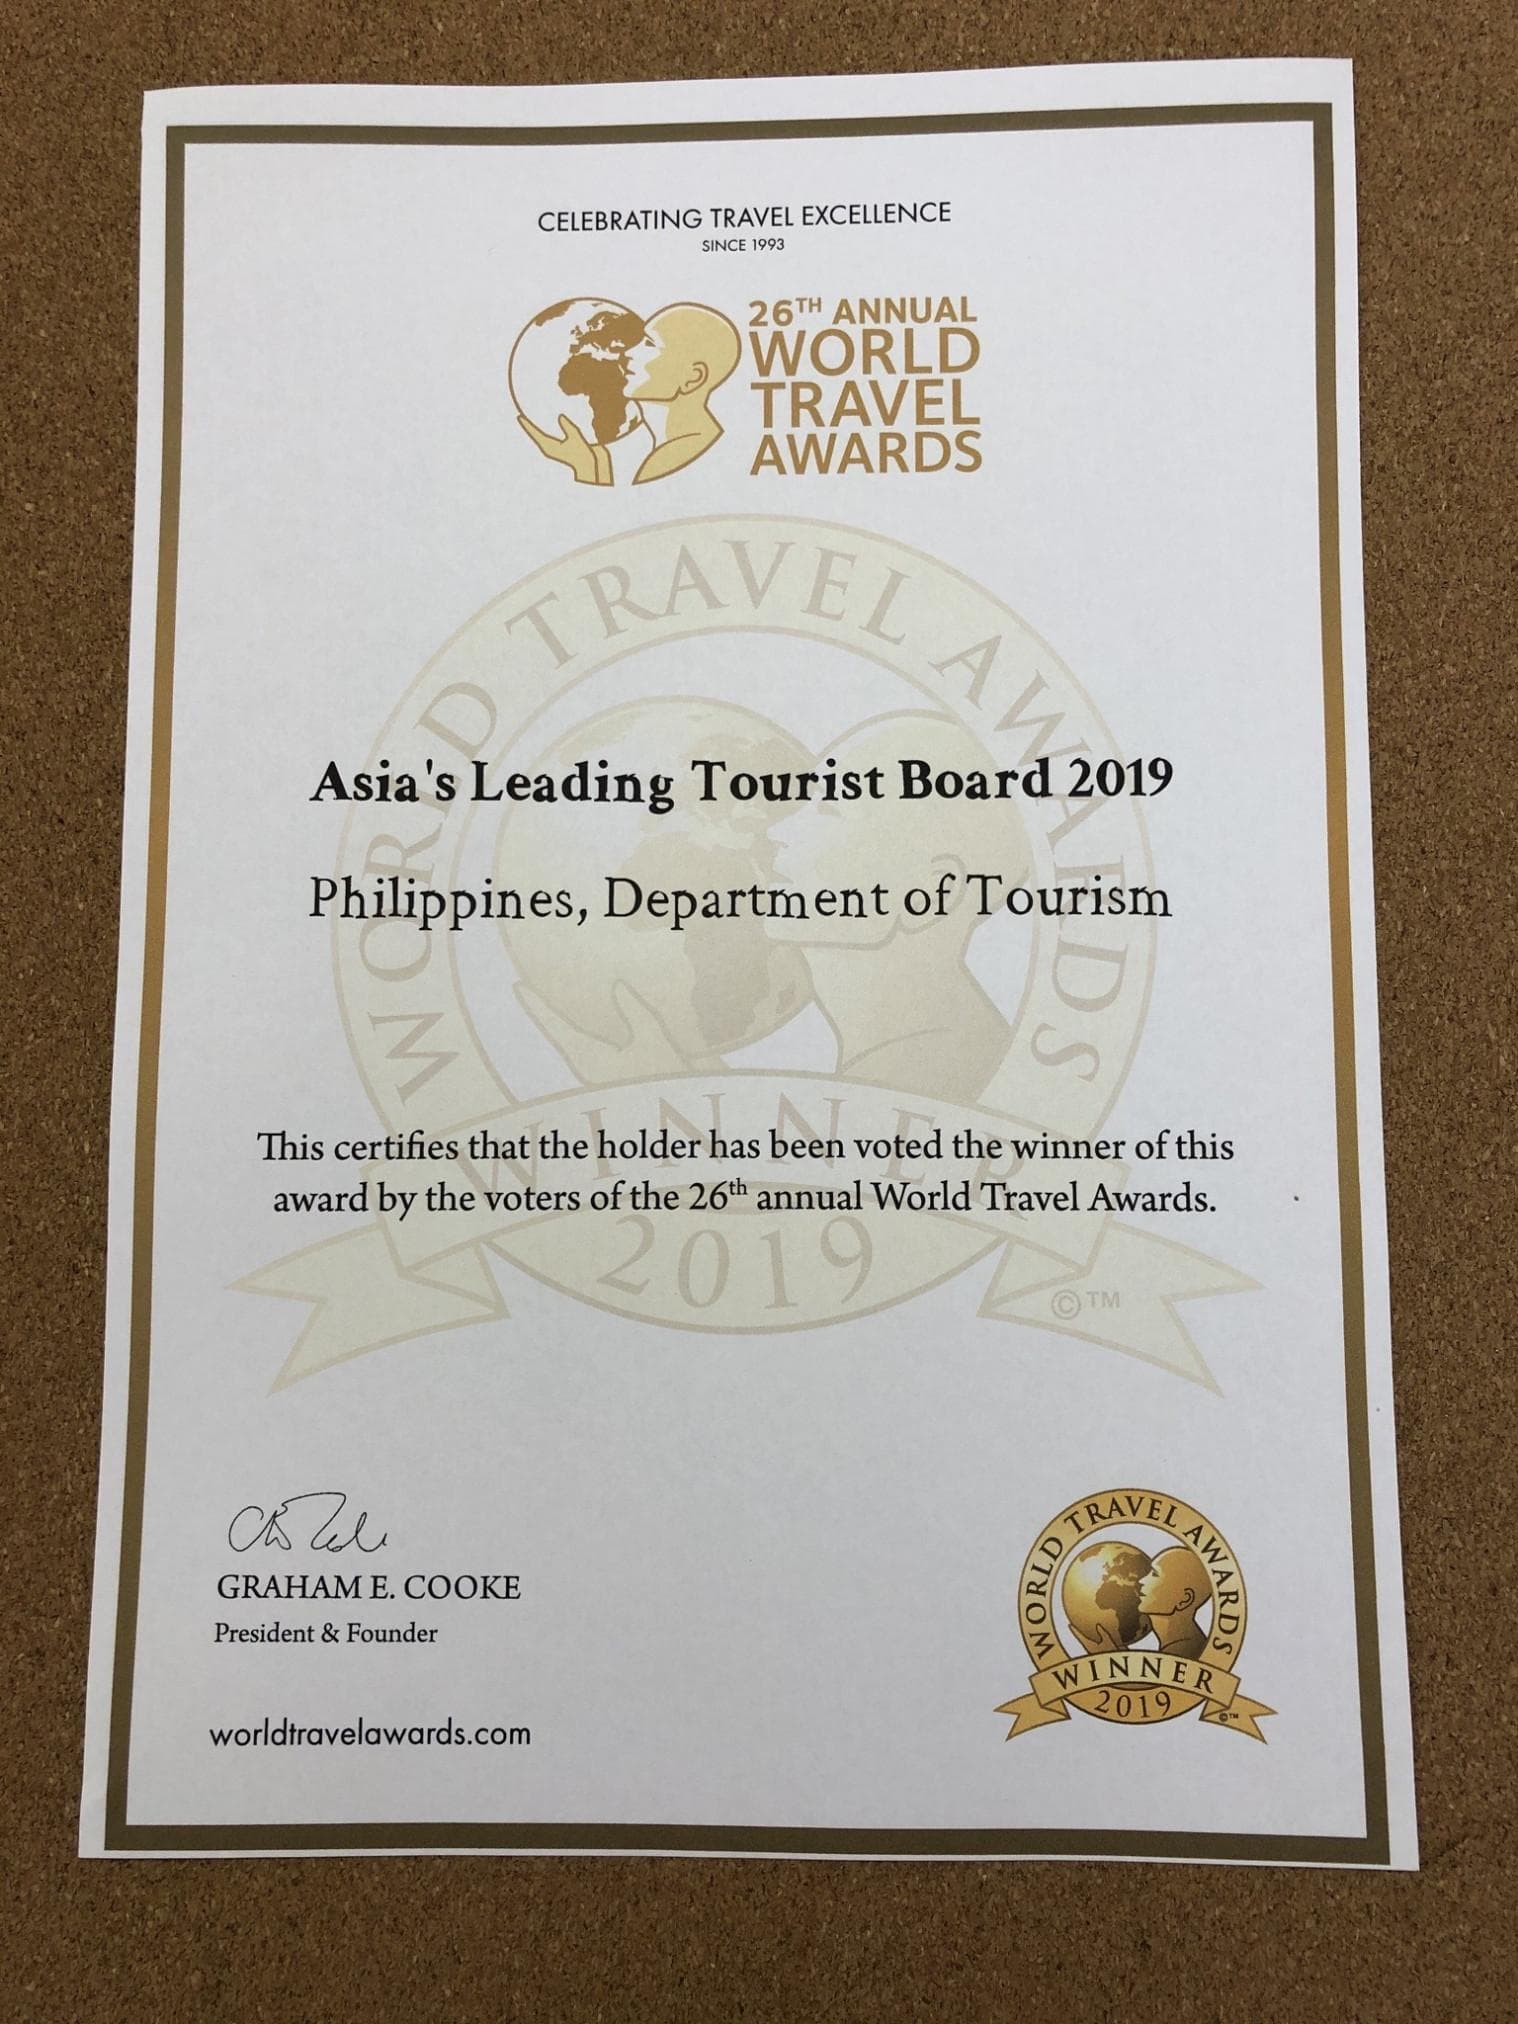 World Travel Awards 2019 Certificate